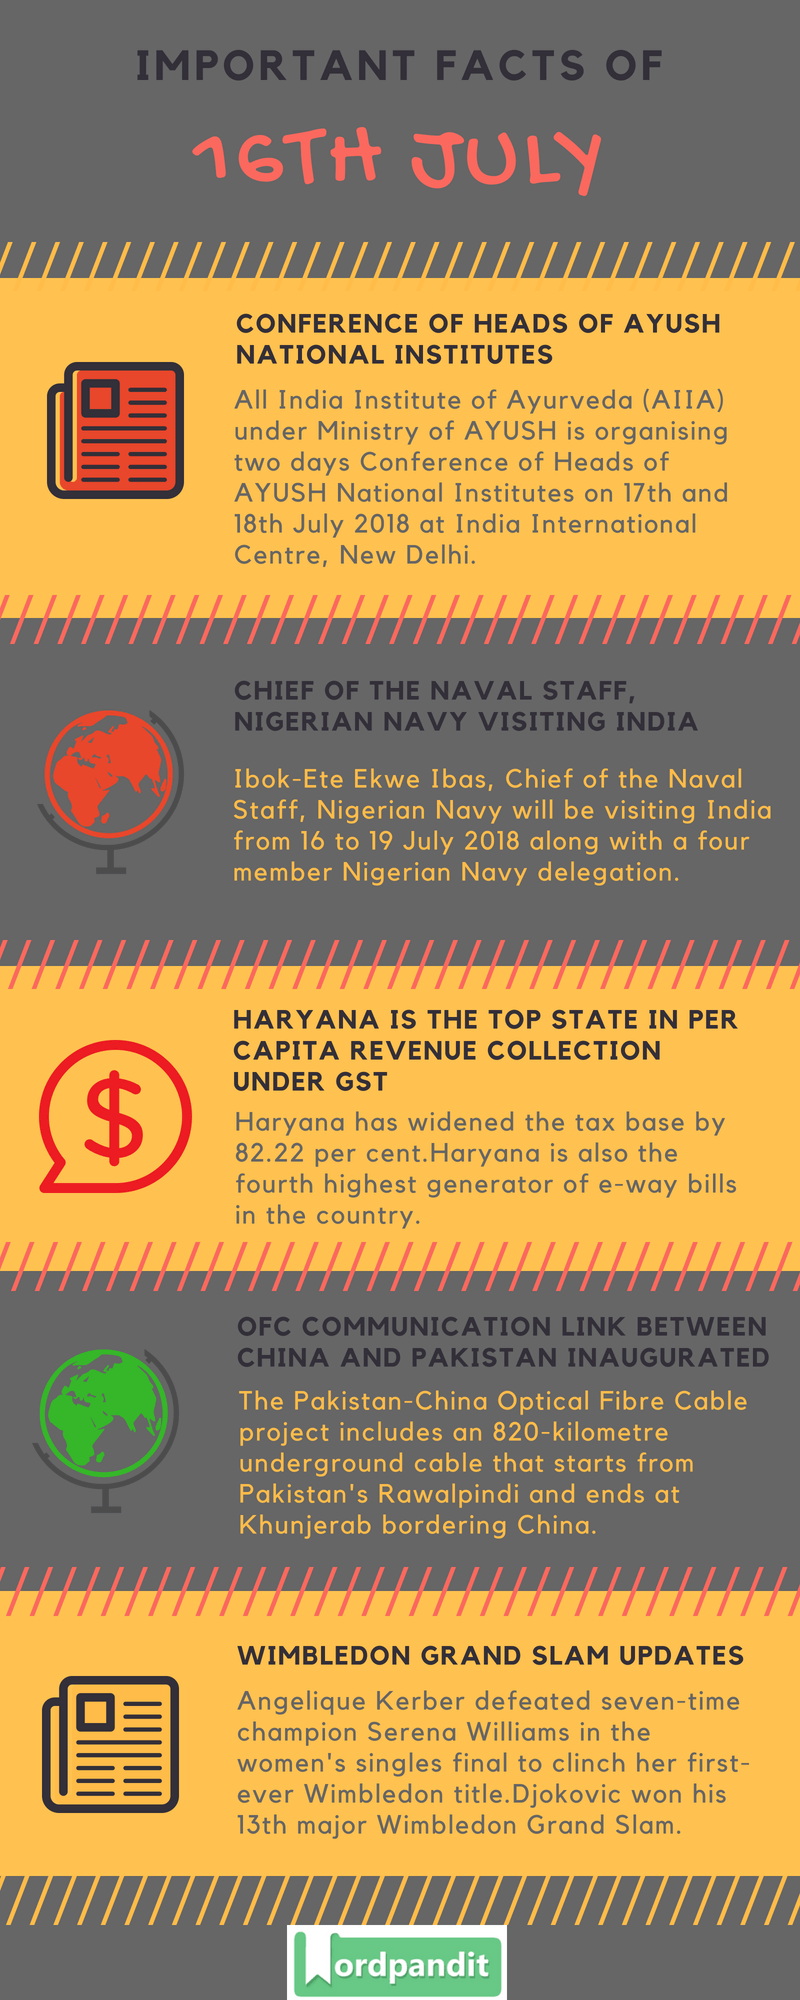 Daily Current Affairs 16 July 2018 Current Affairs Quiz July 16 2018 Current Affairs Infographic